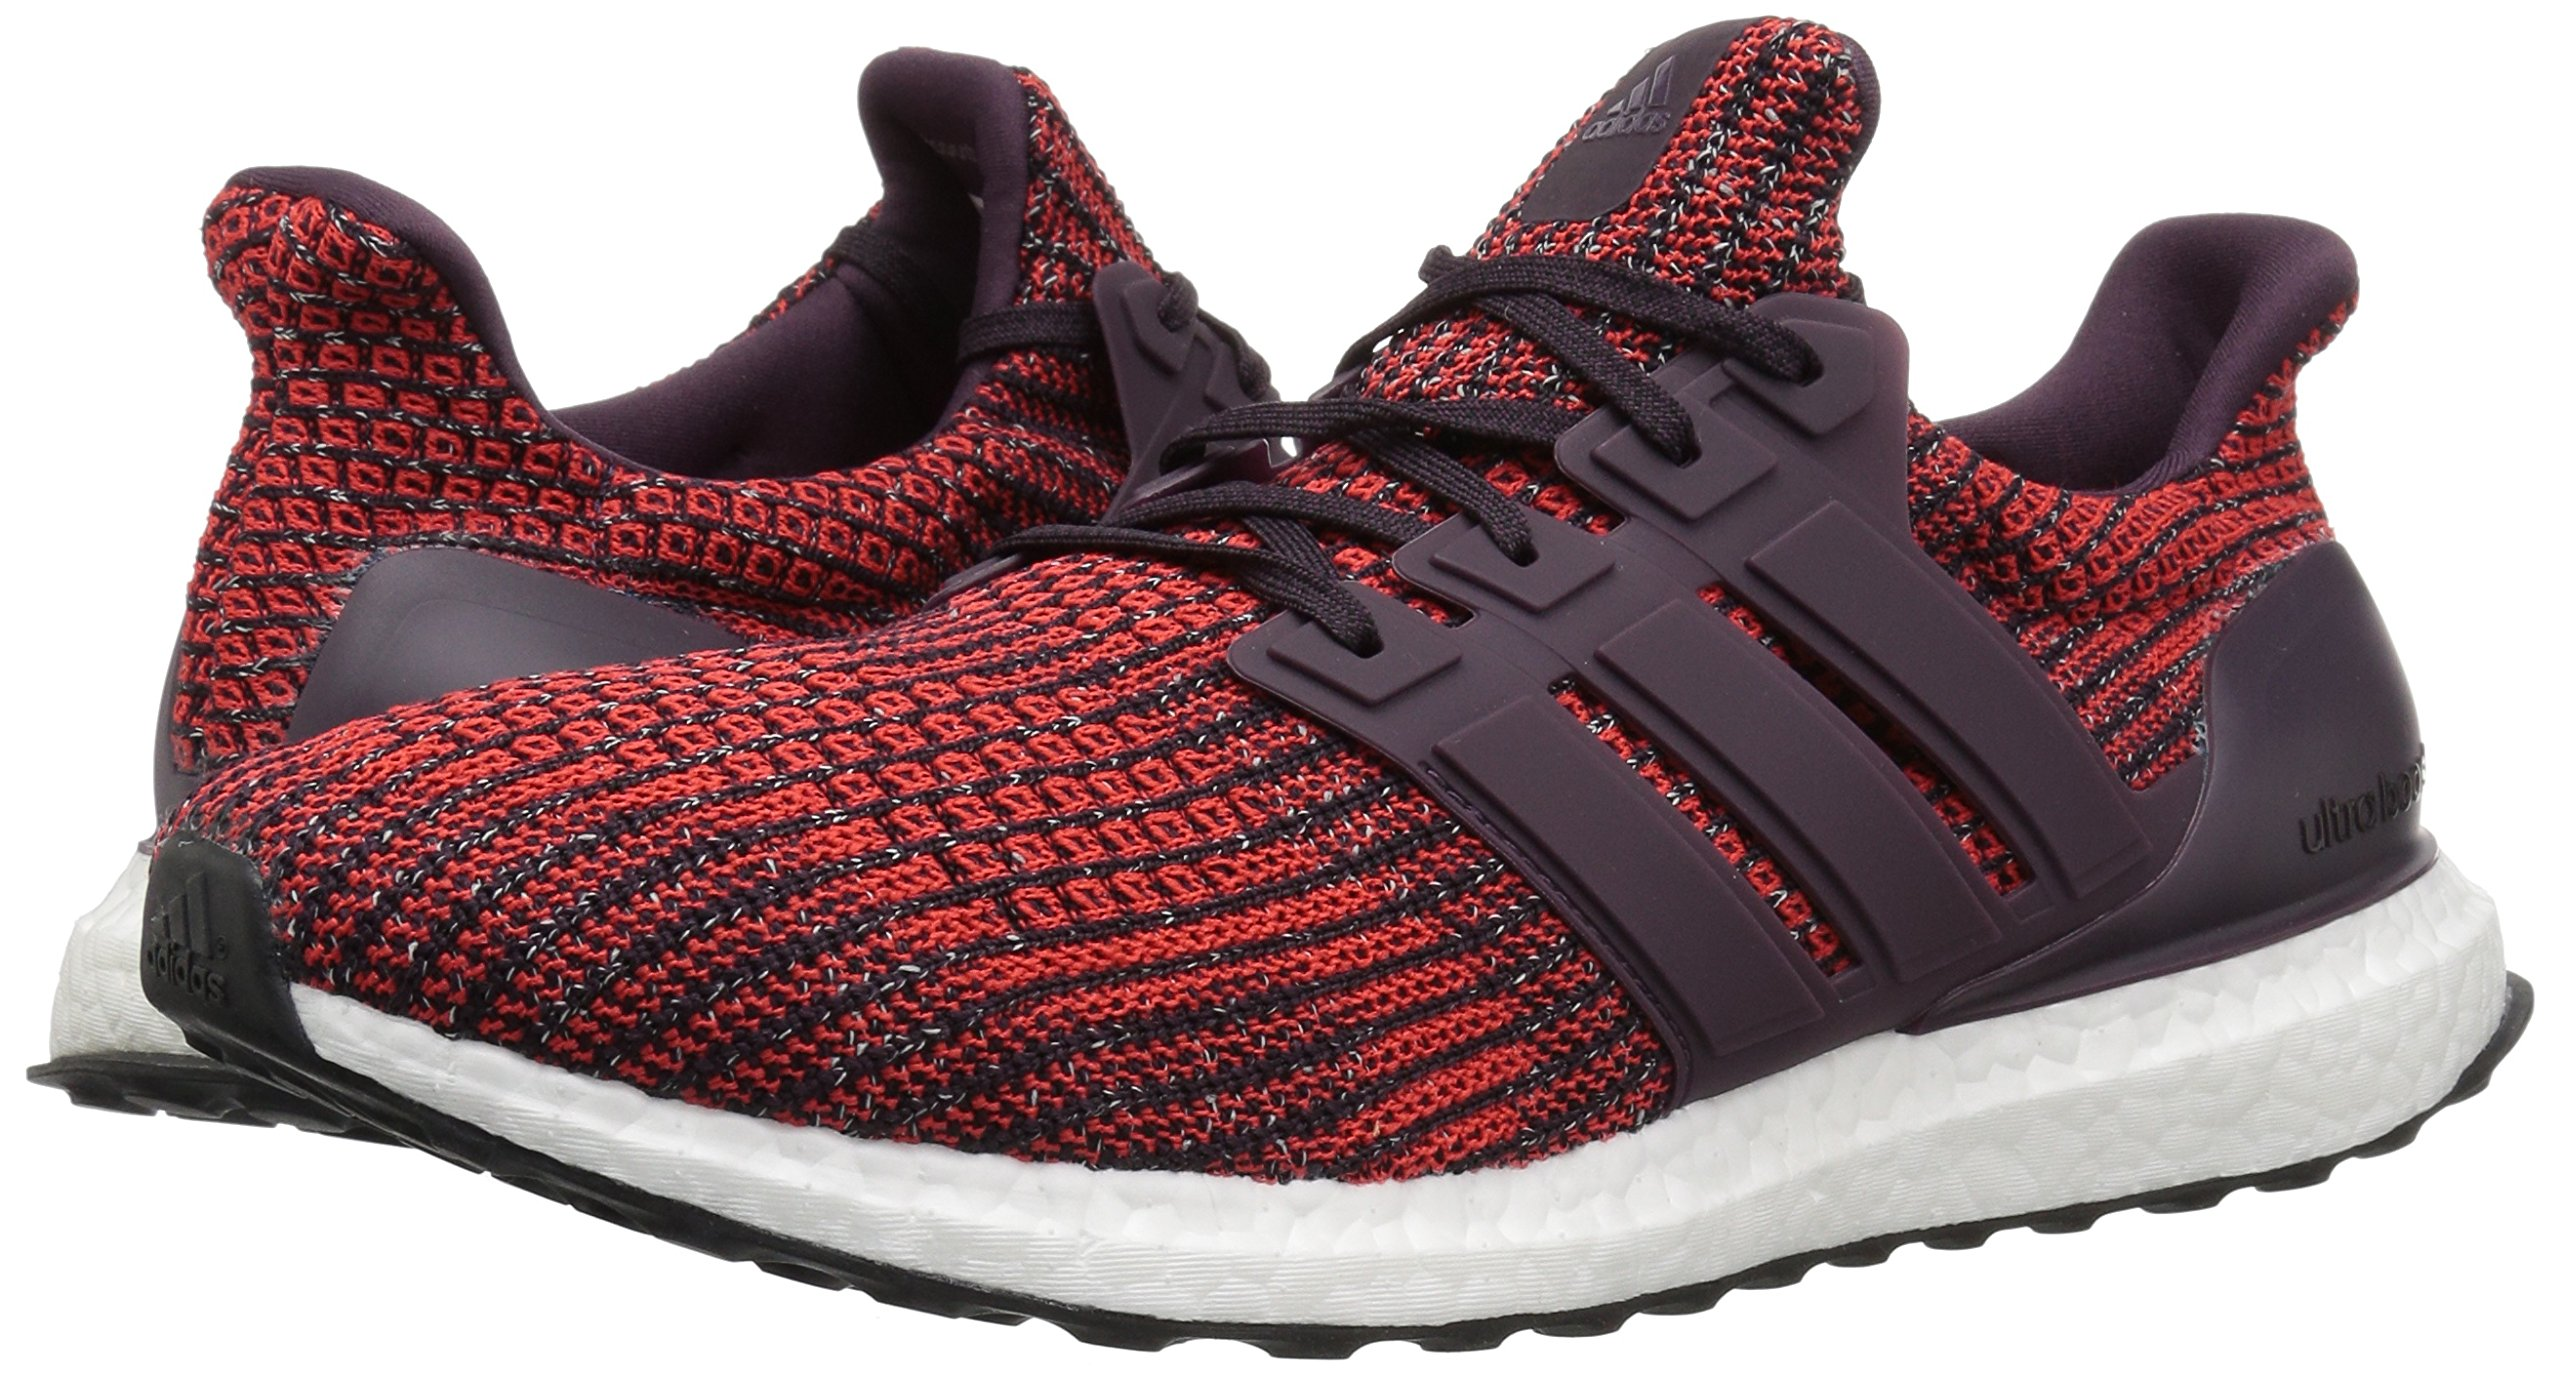 adidas Men's Ultraboost Road Running Shoe, Noble Red/Noble Red/Core Black, 5 M US by adidas (Image #6)